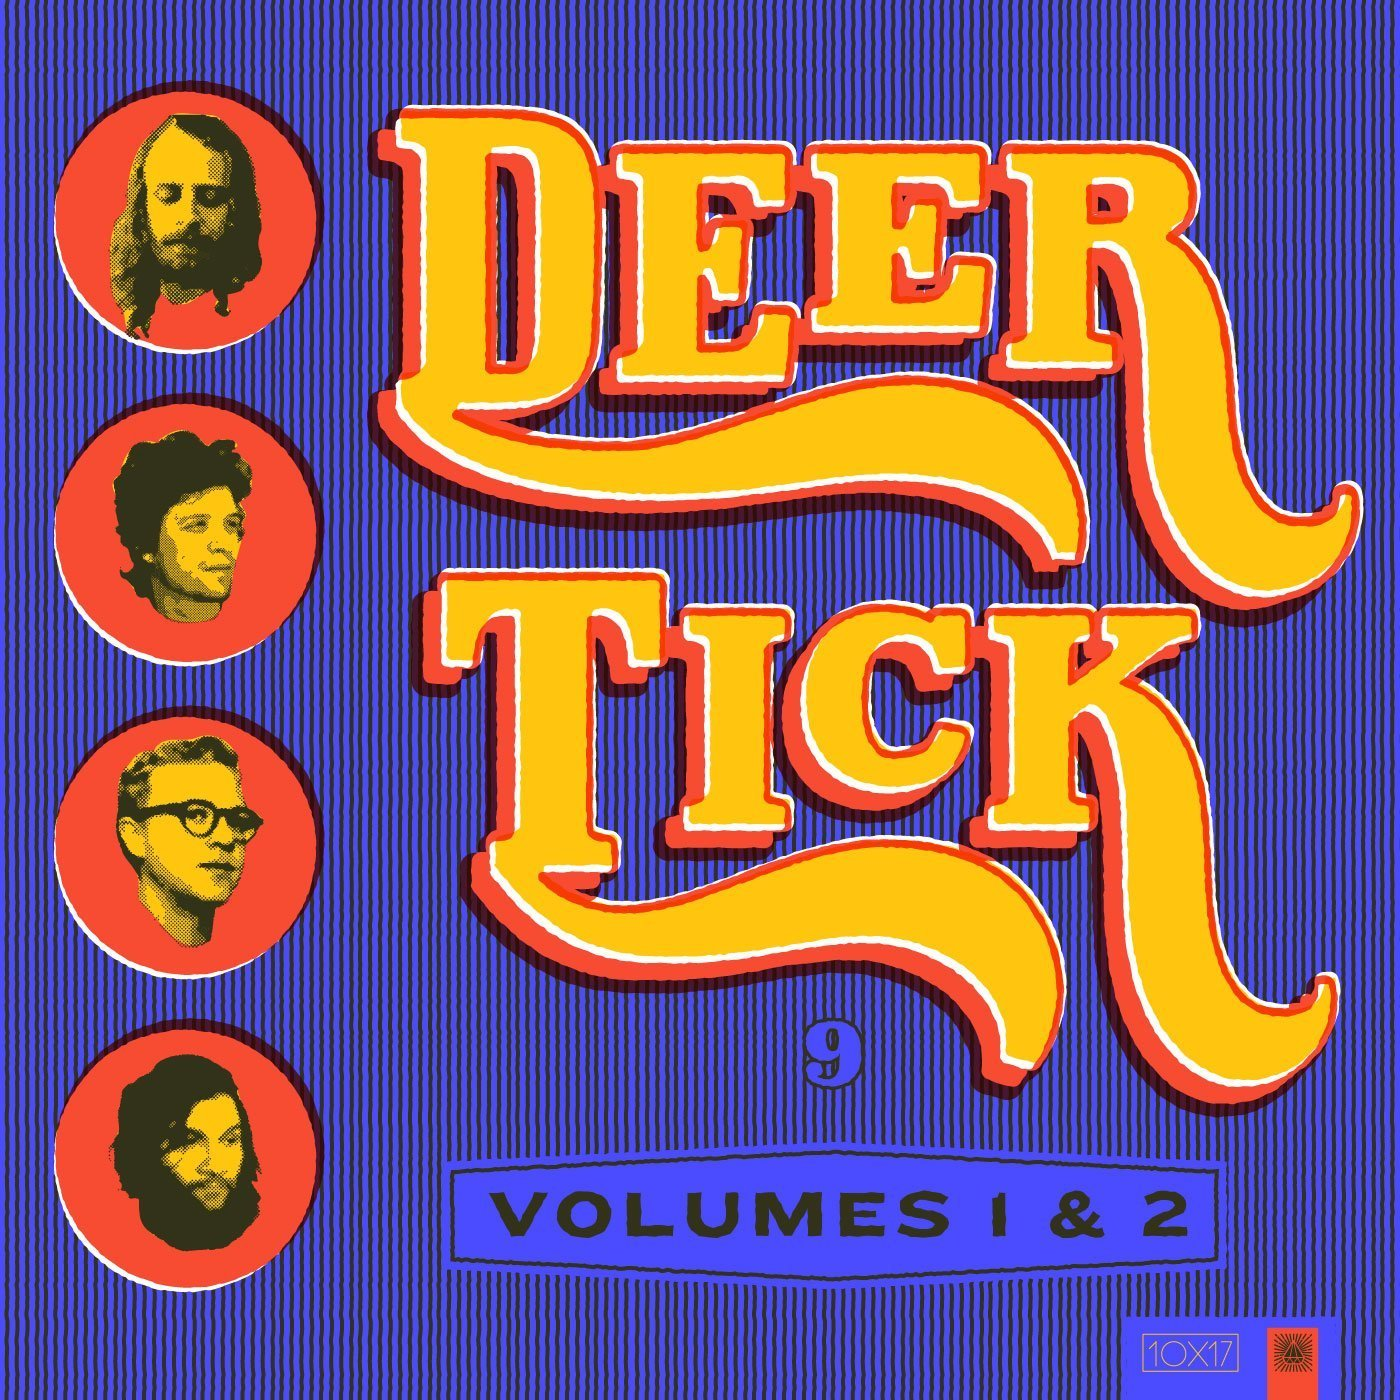 Deer Tick Album Art Reimagined by Amy Hood - Vintage Country Lettering